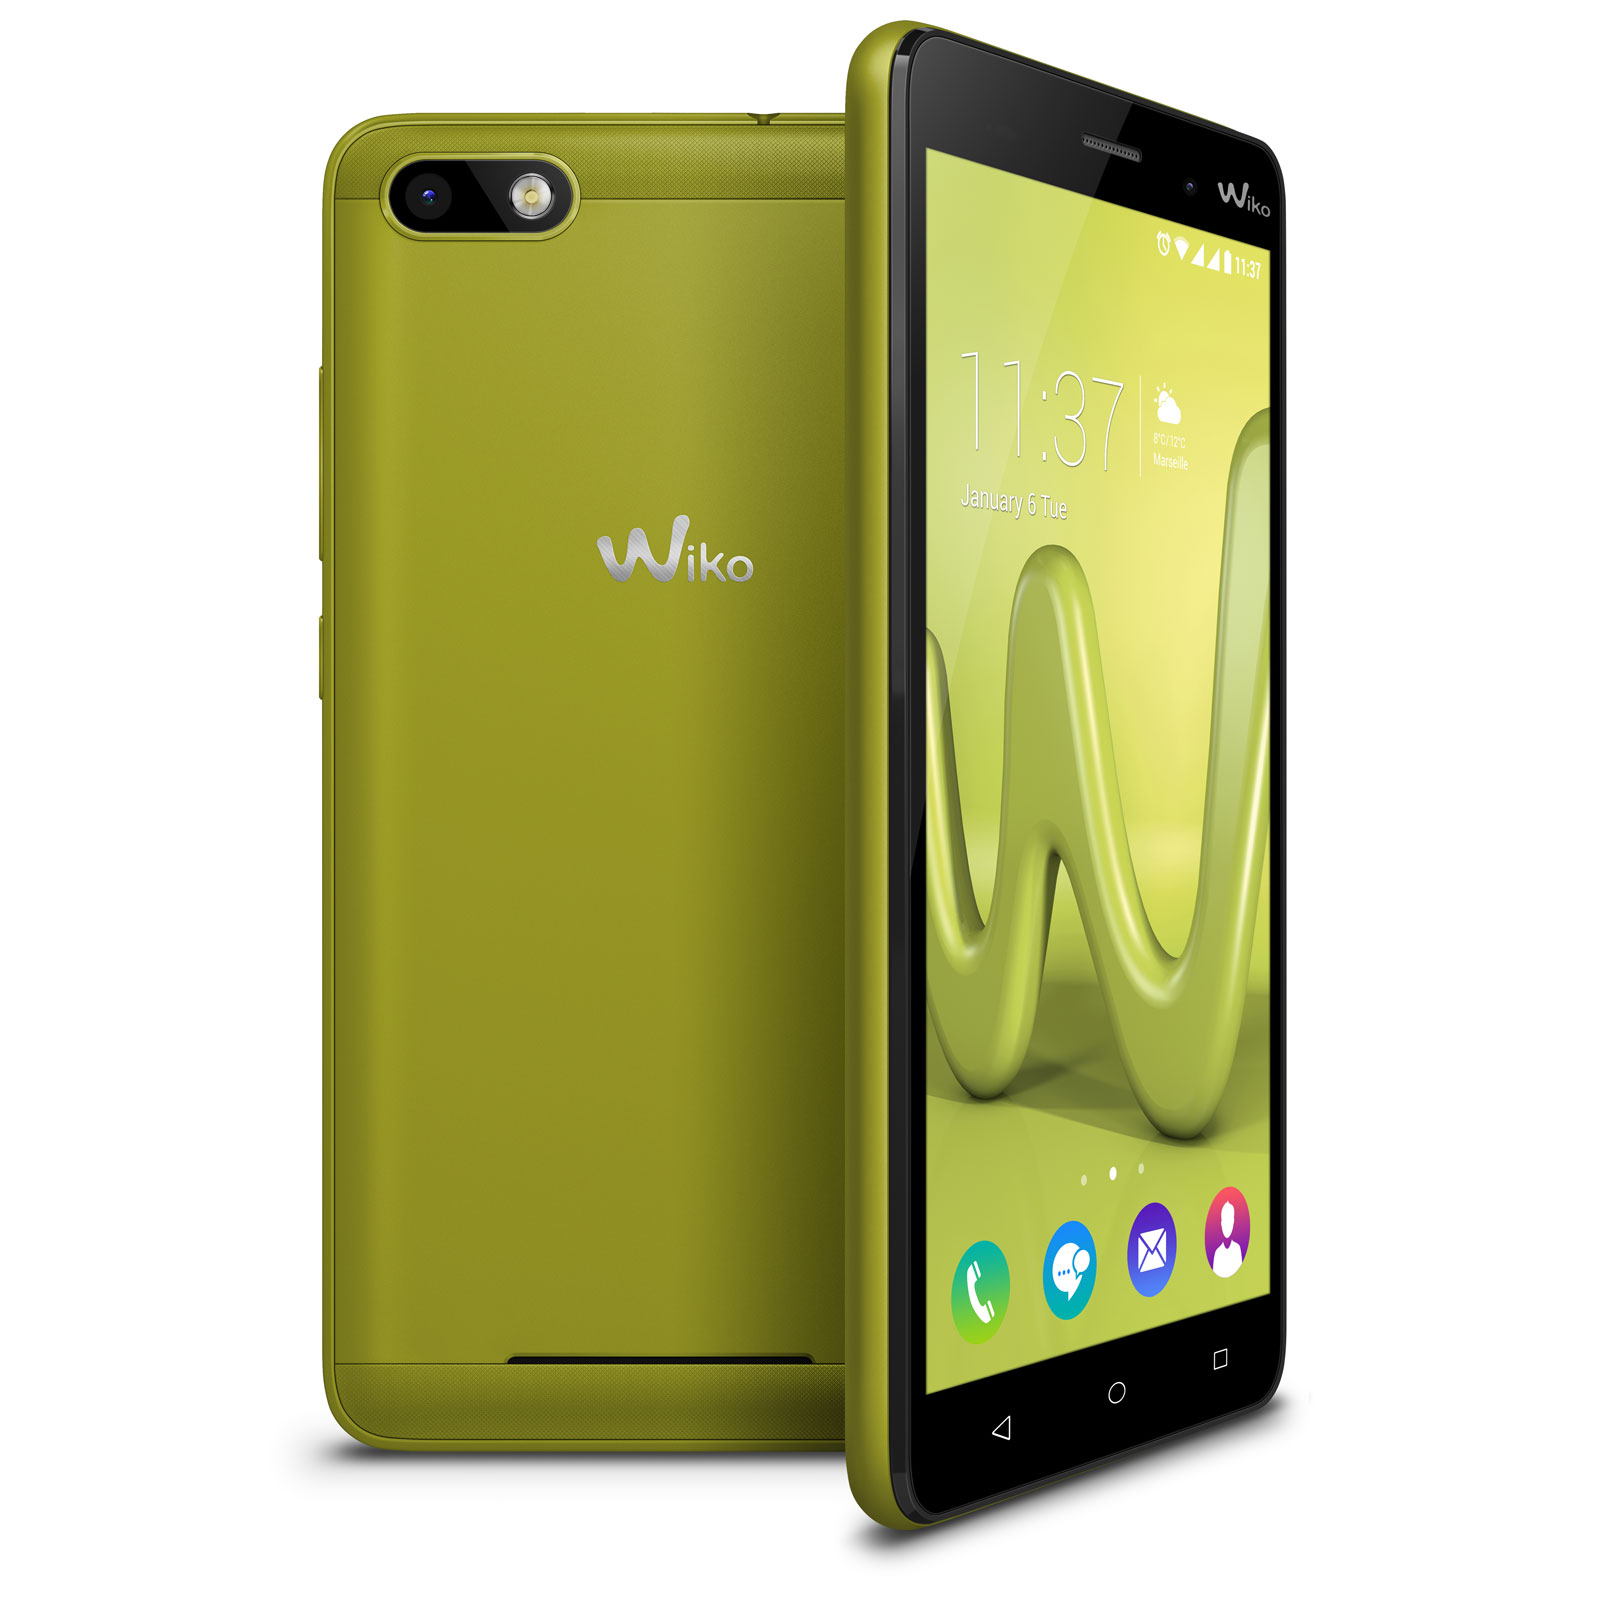 wiko lenny 3 lime mobile smartphone wiko sur ldlc. Black Bedroom Furniture Sets. Home Design Ideas